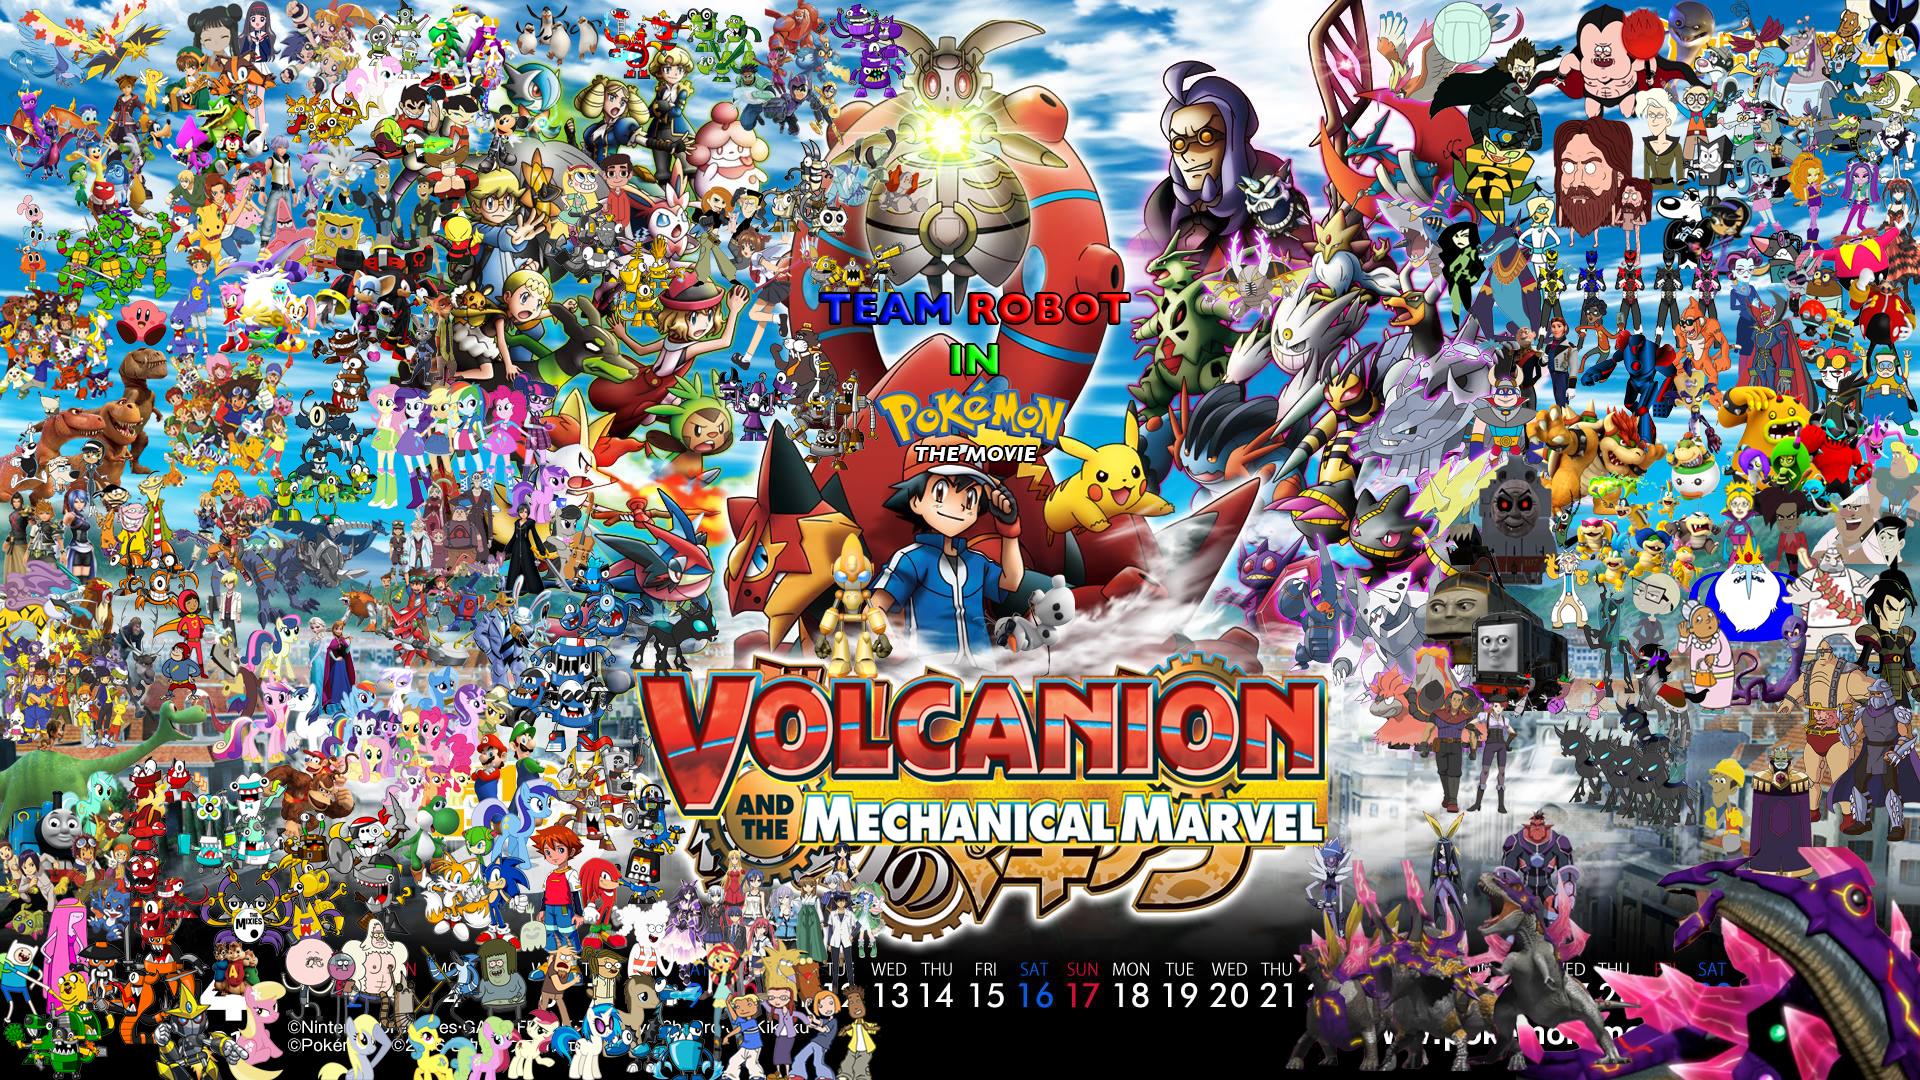 Team Robot In Pokemon Movie Volcanion And The Mechanical Marvel